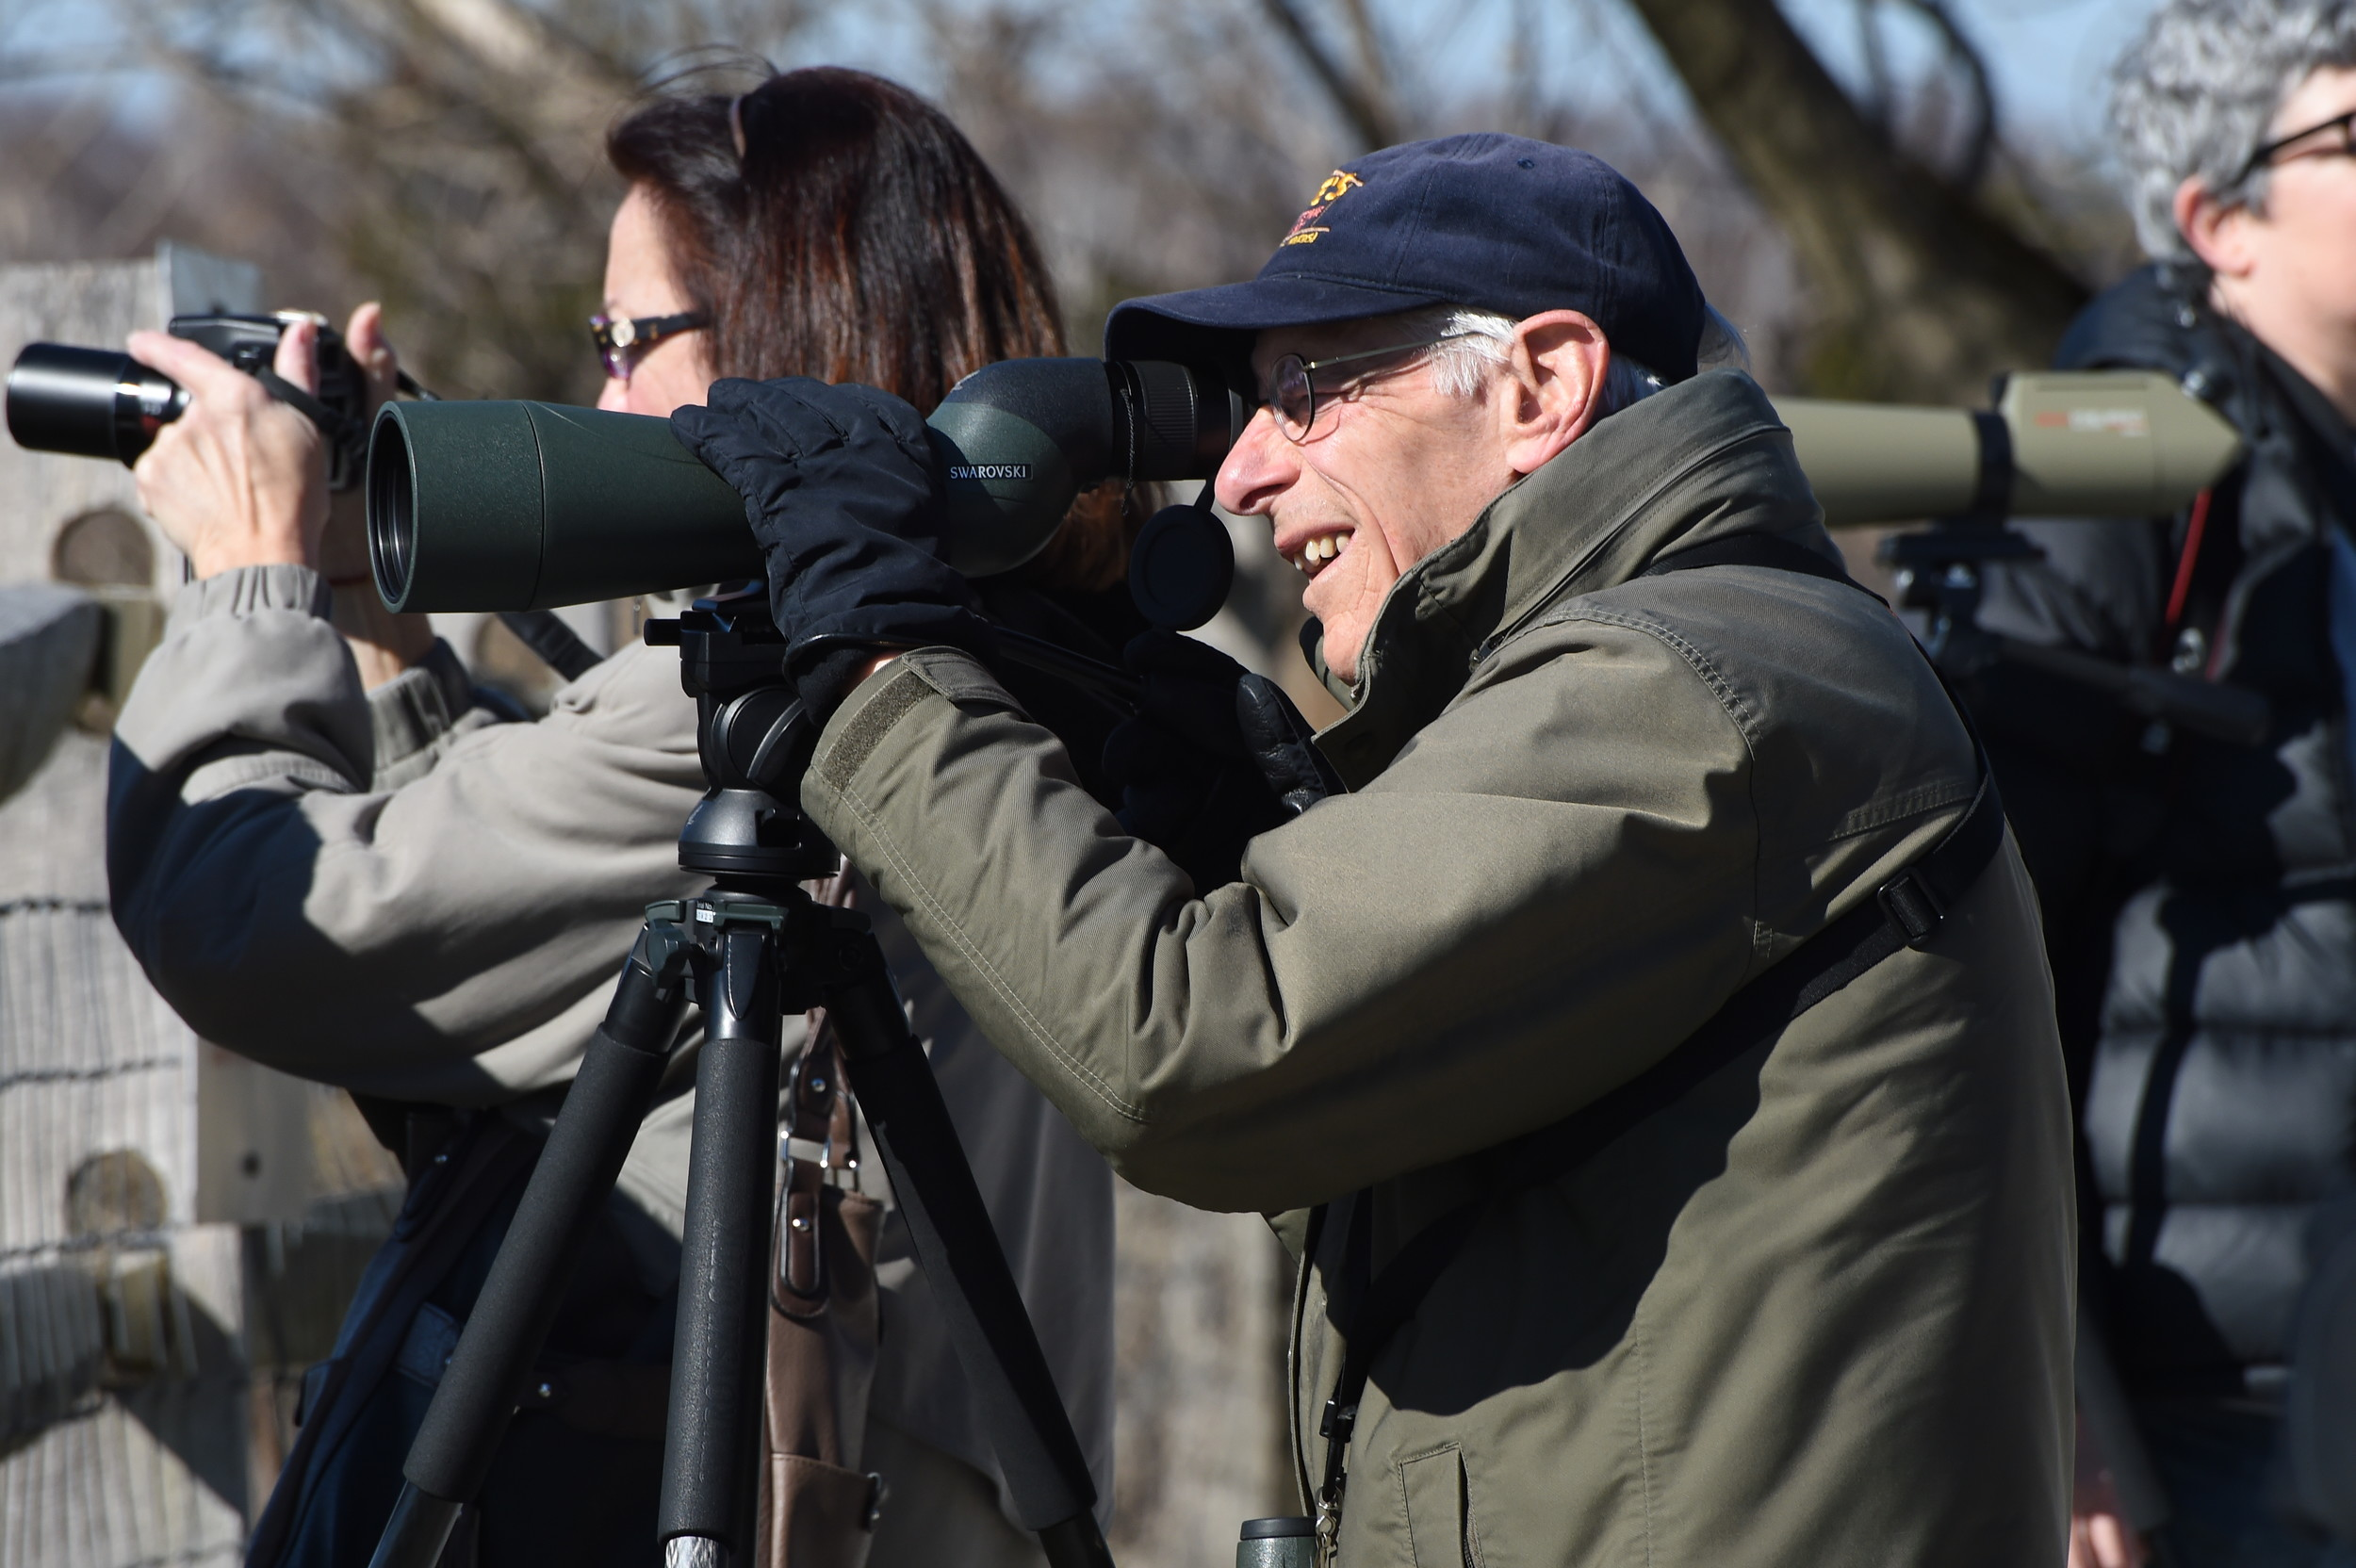 Local South Shore Audubon Society member Joe Landesberg spotted some osprey on a venture in Merrick earlier this spring.